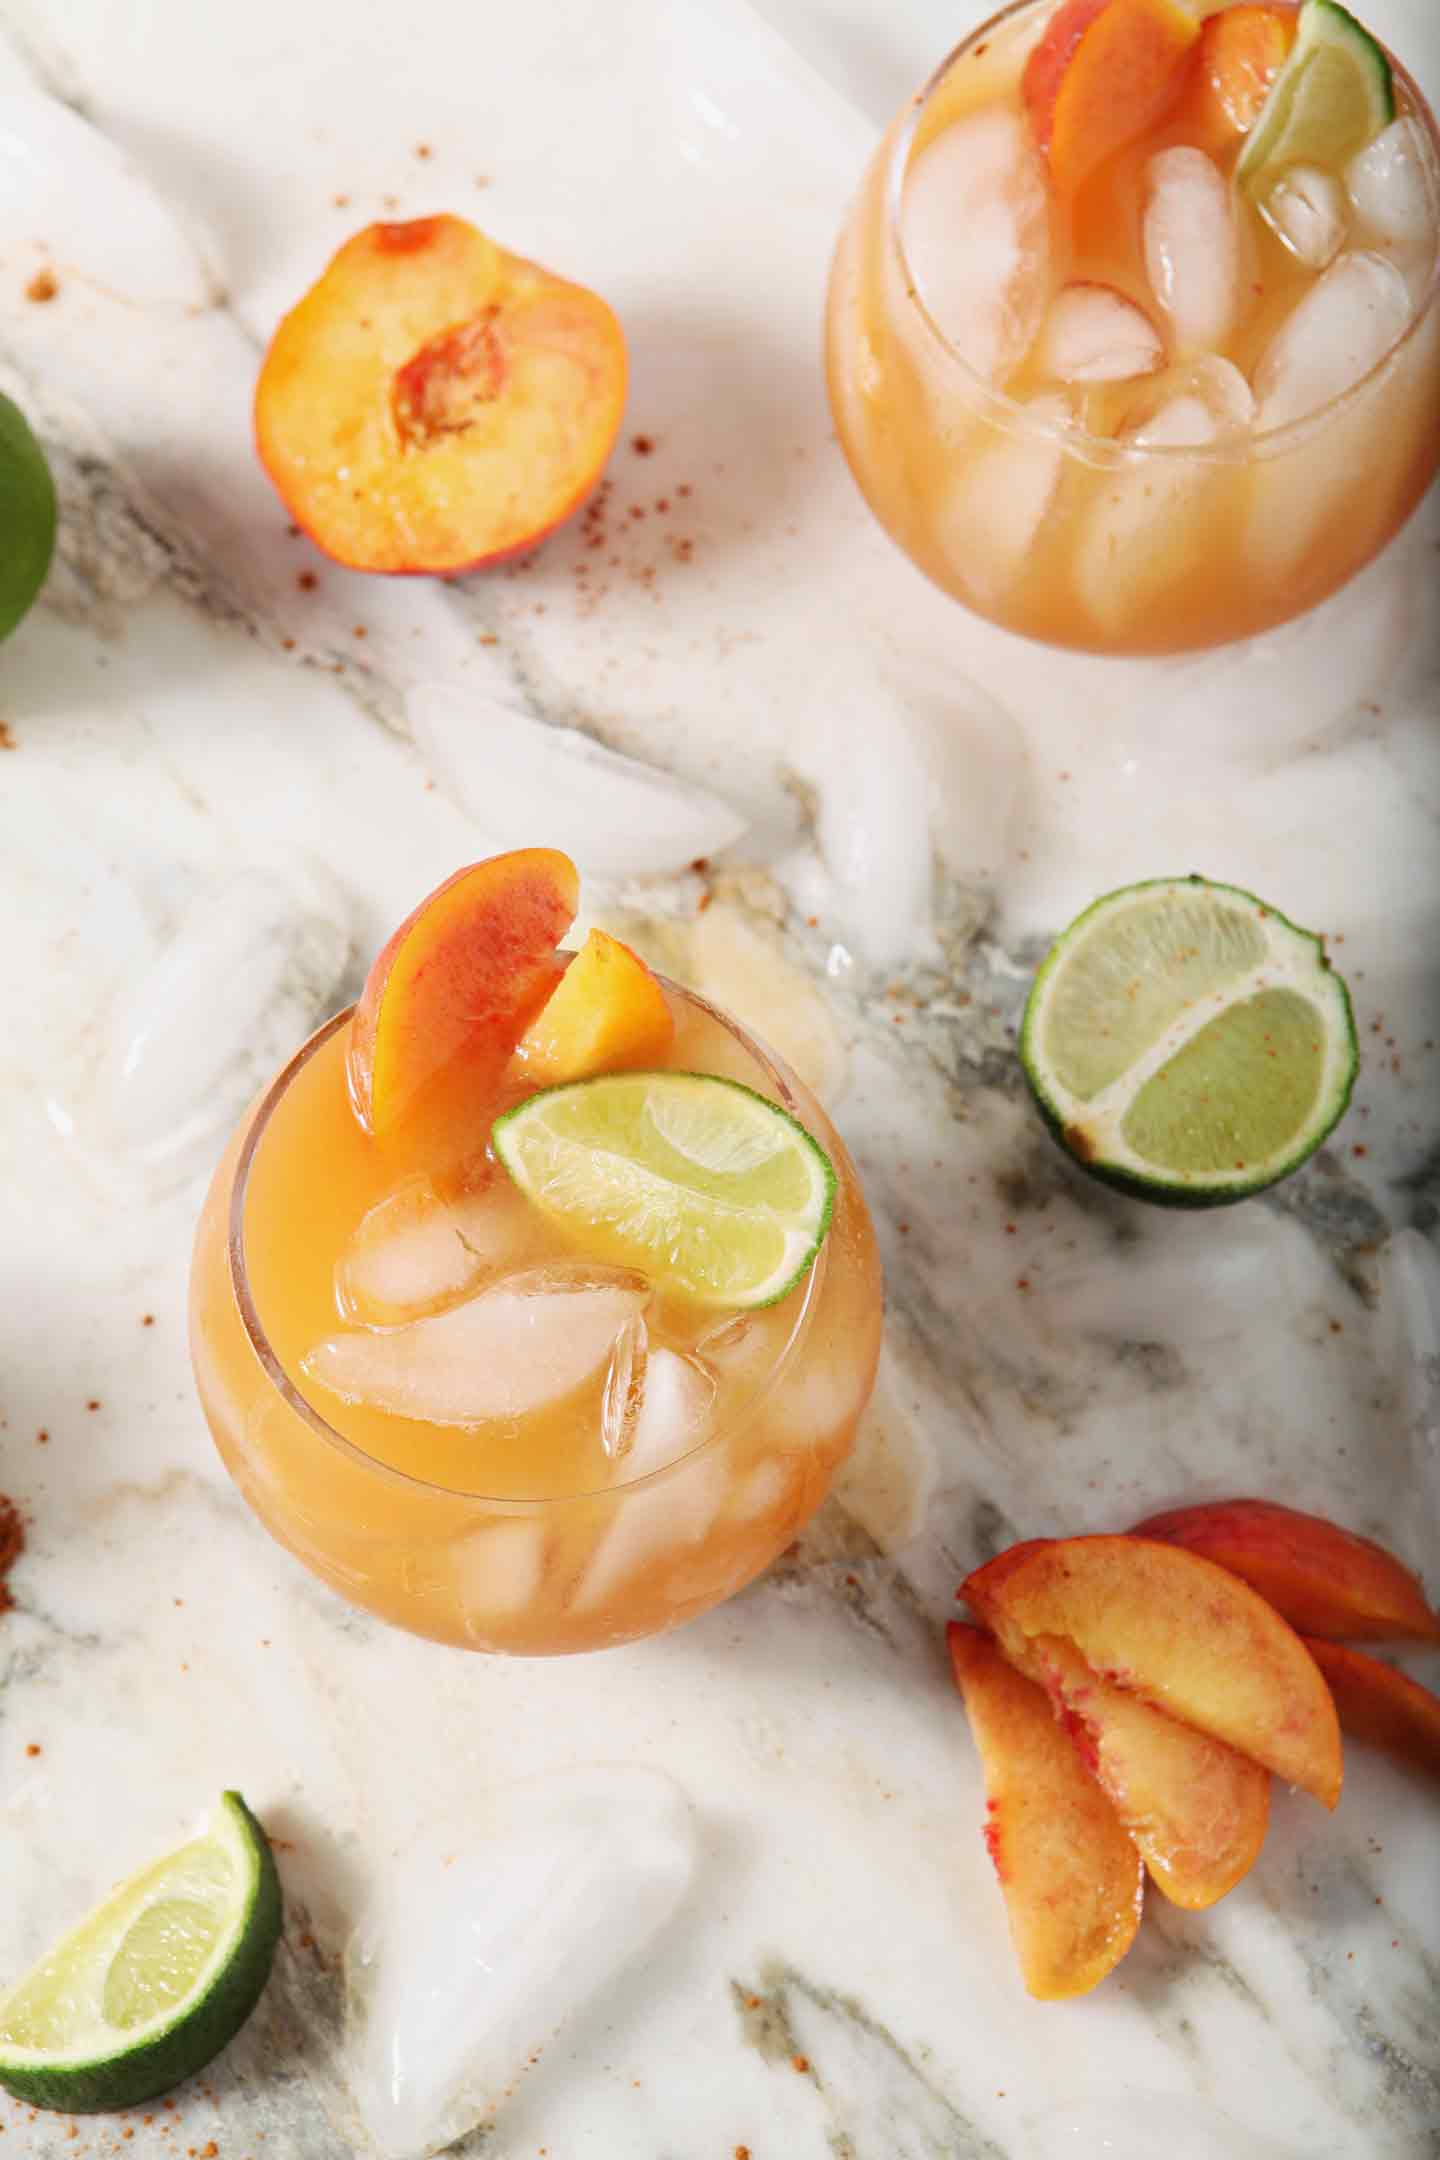 Overhead image of two Peach Moscow Mules, garnished with peach slices and lime wedges